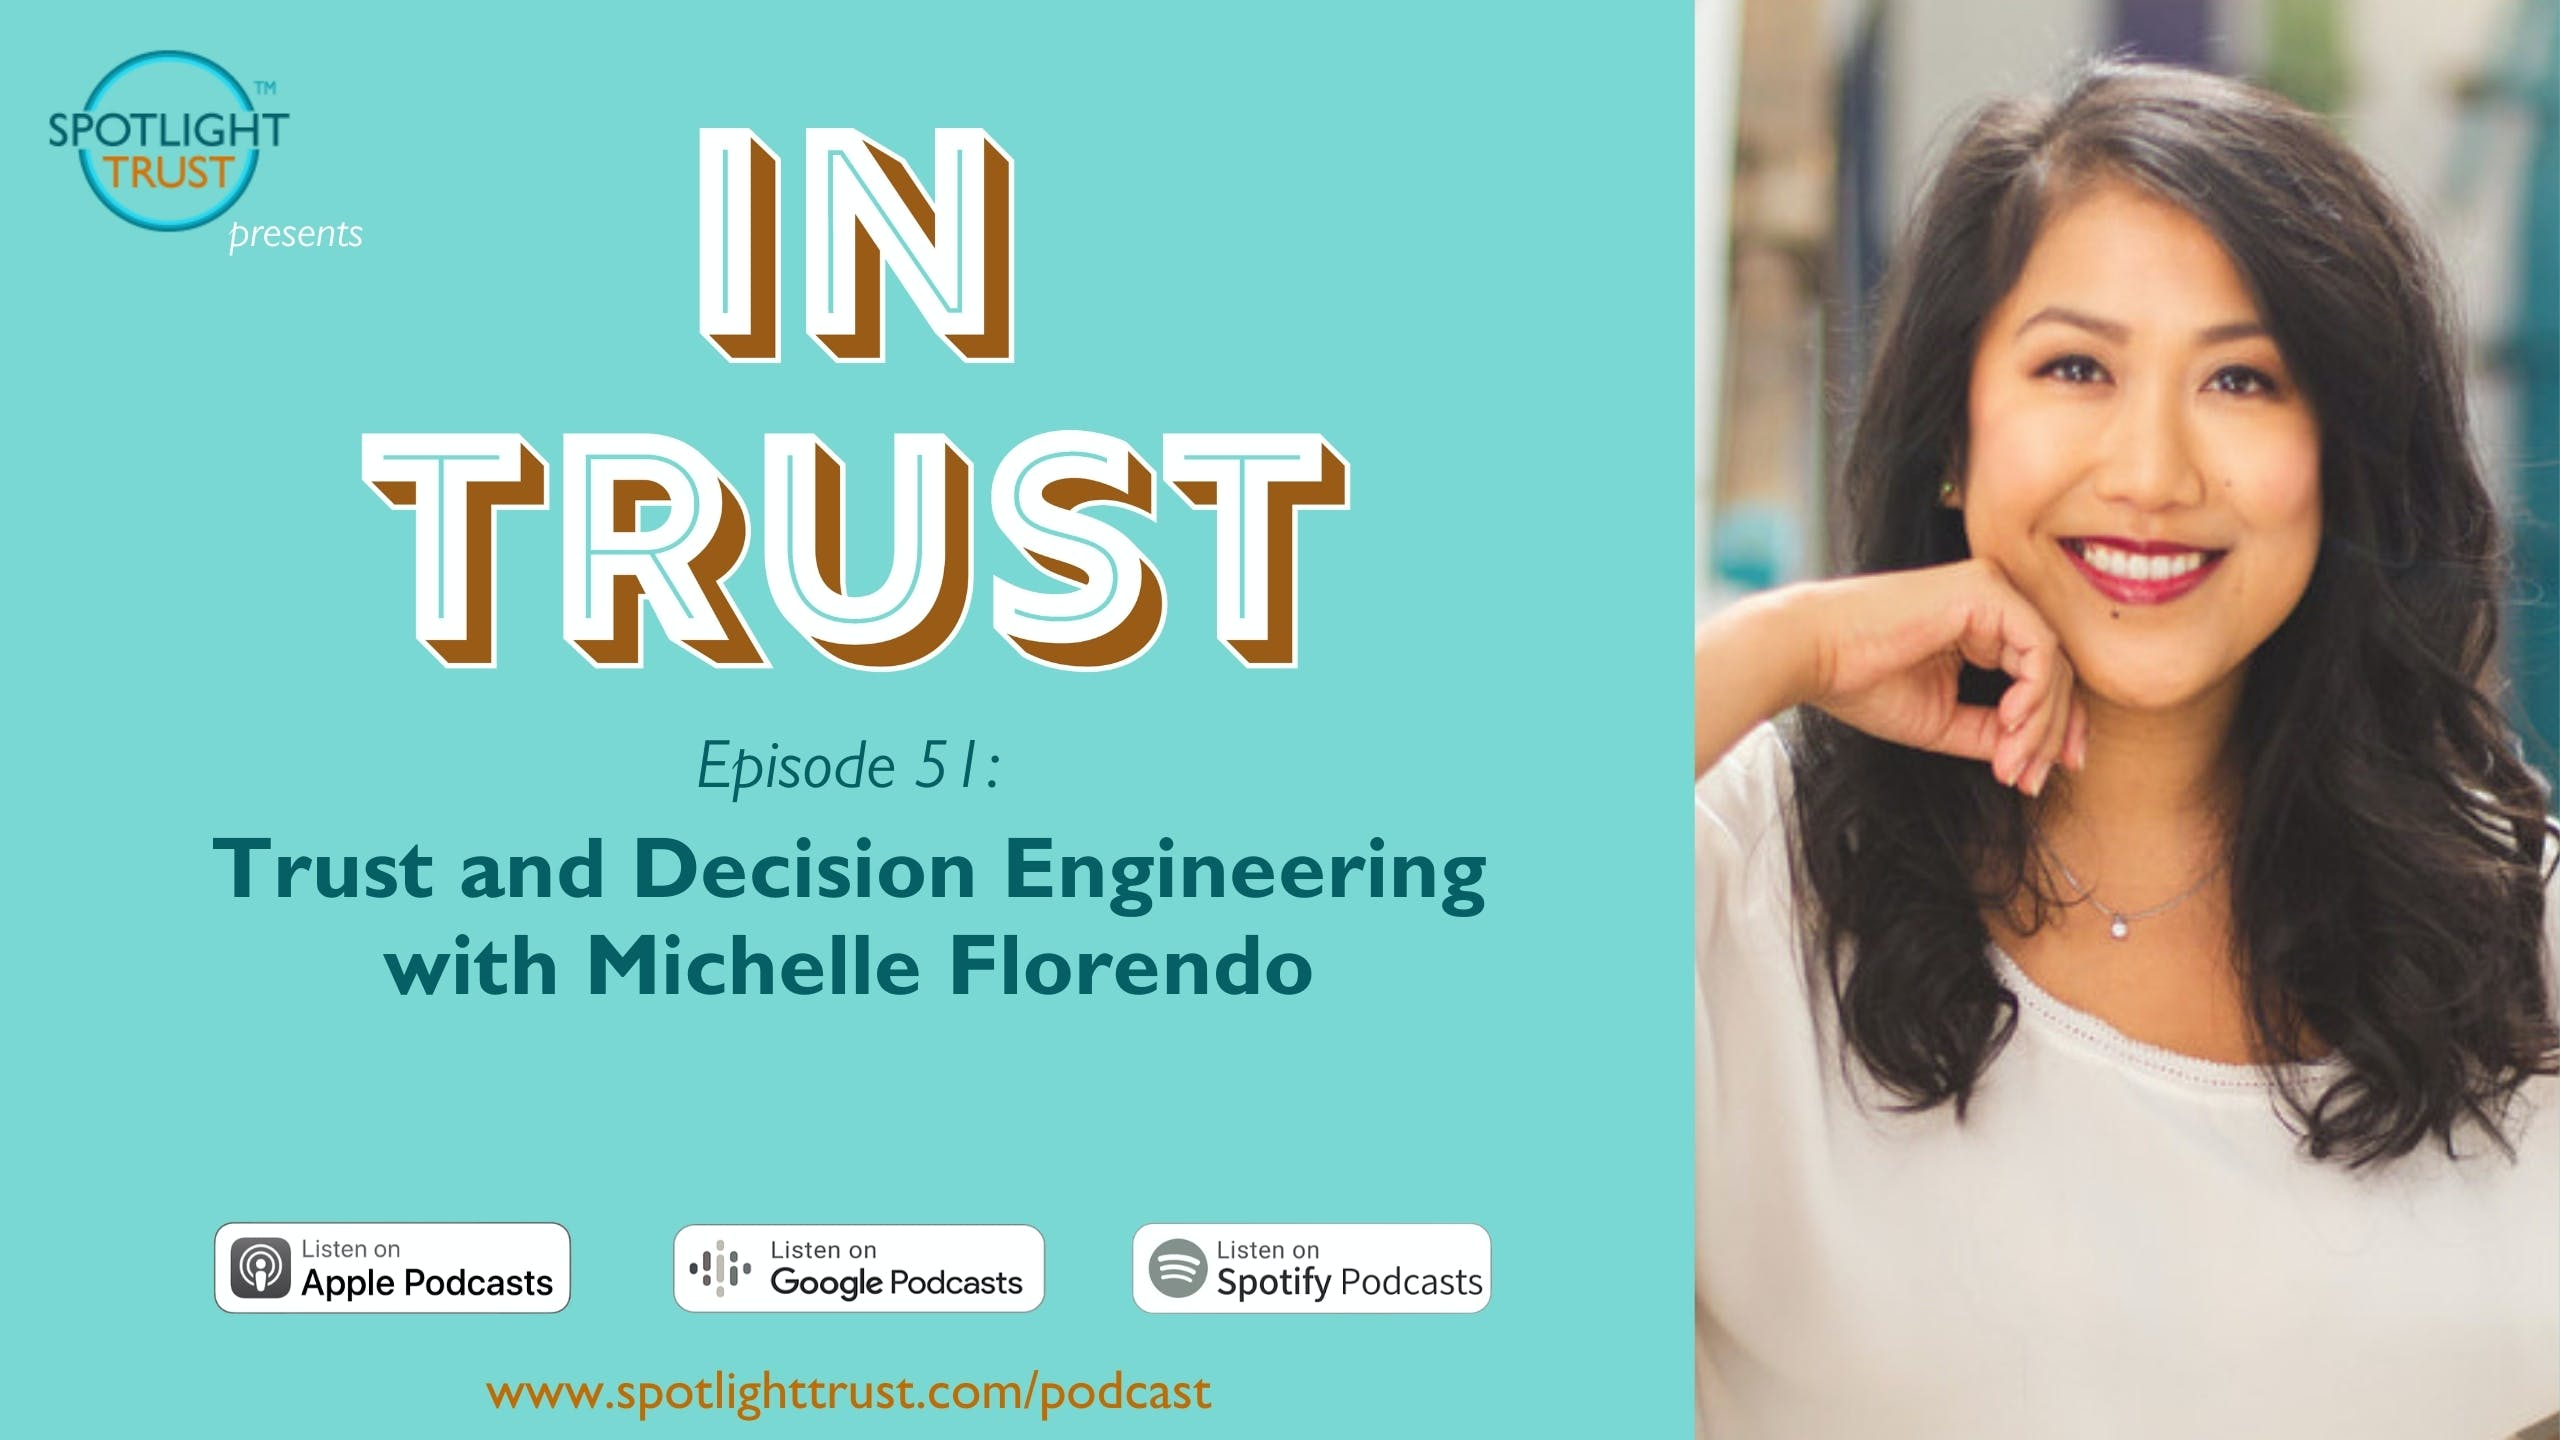 In Trust podcast episode 51: Trust and Decision Engineering with Michelle Florendo